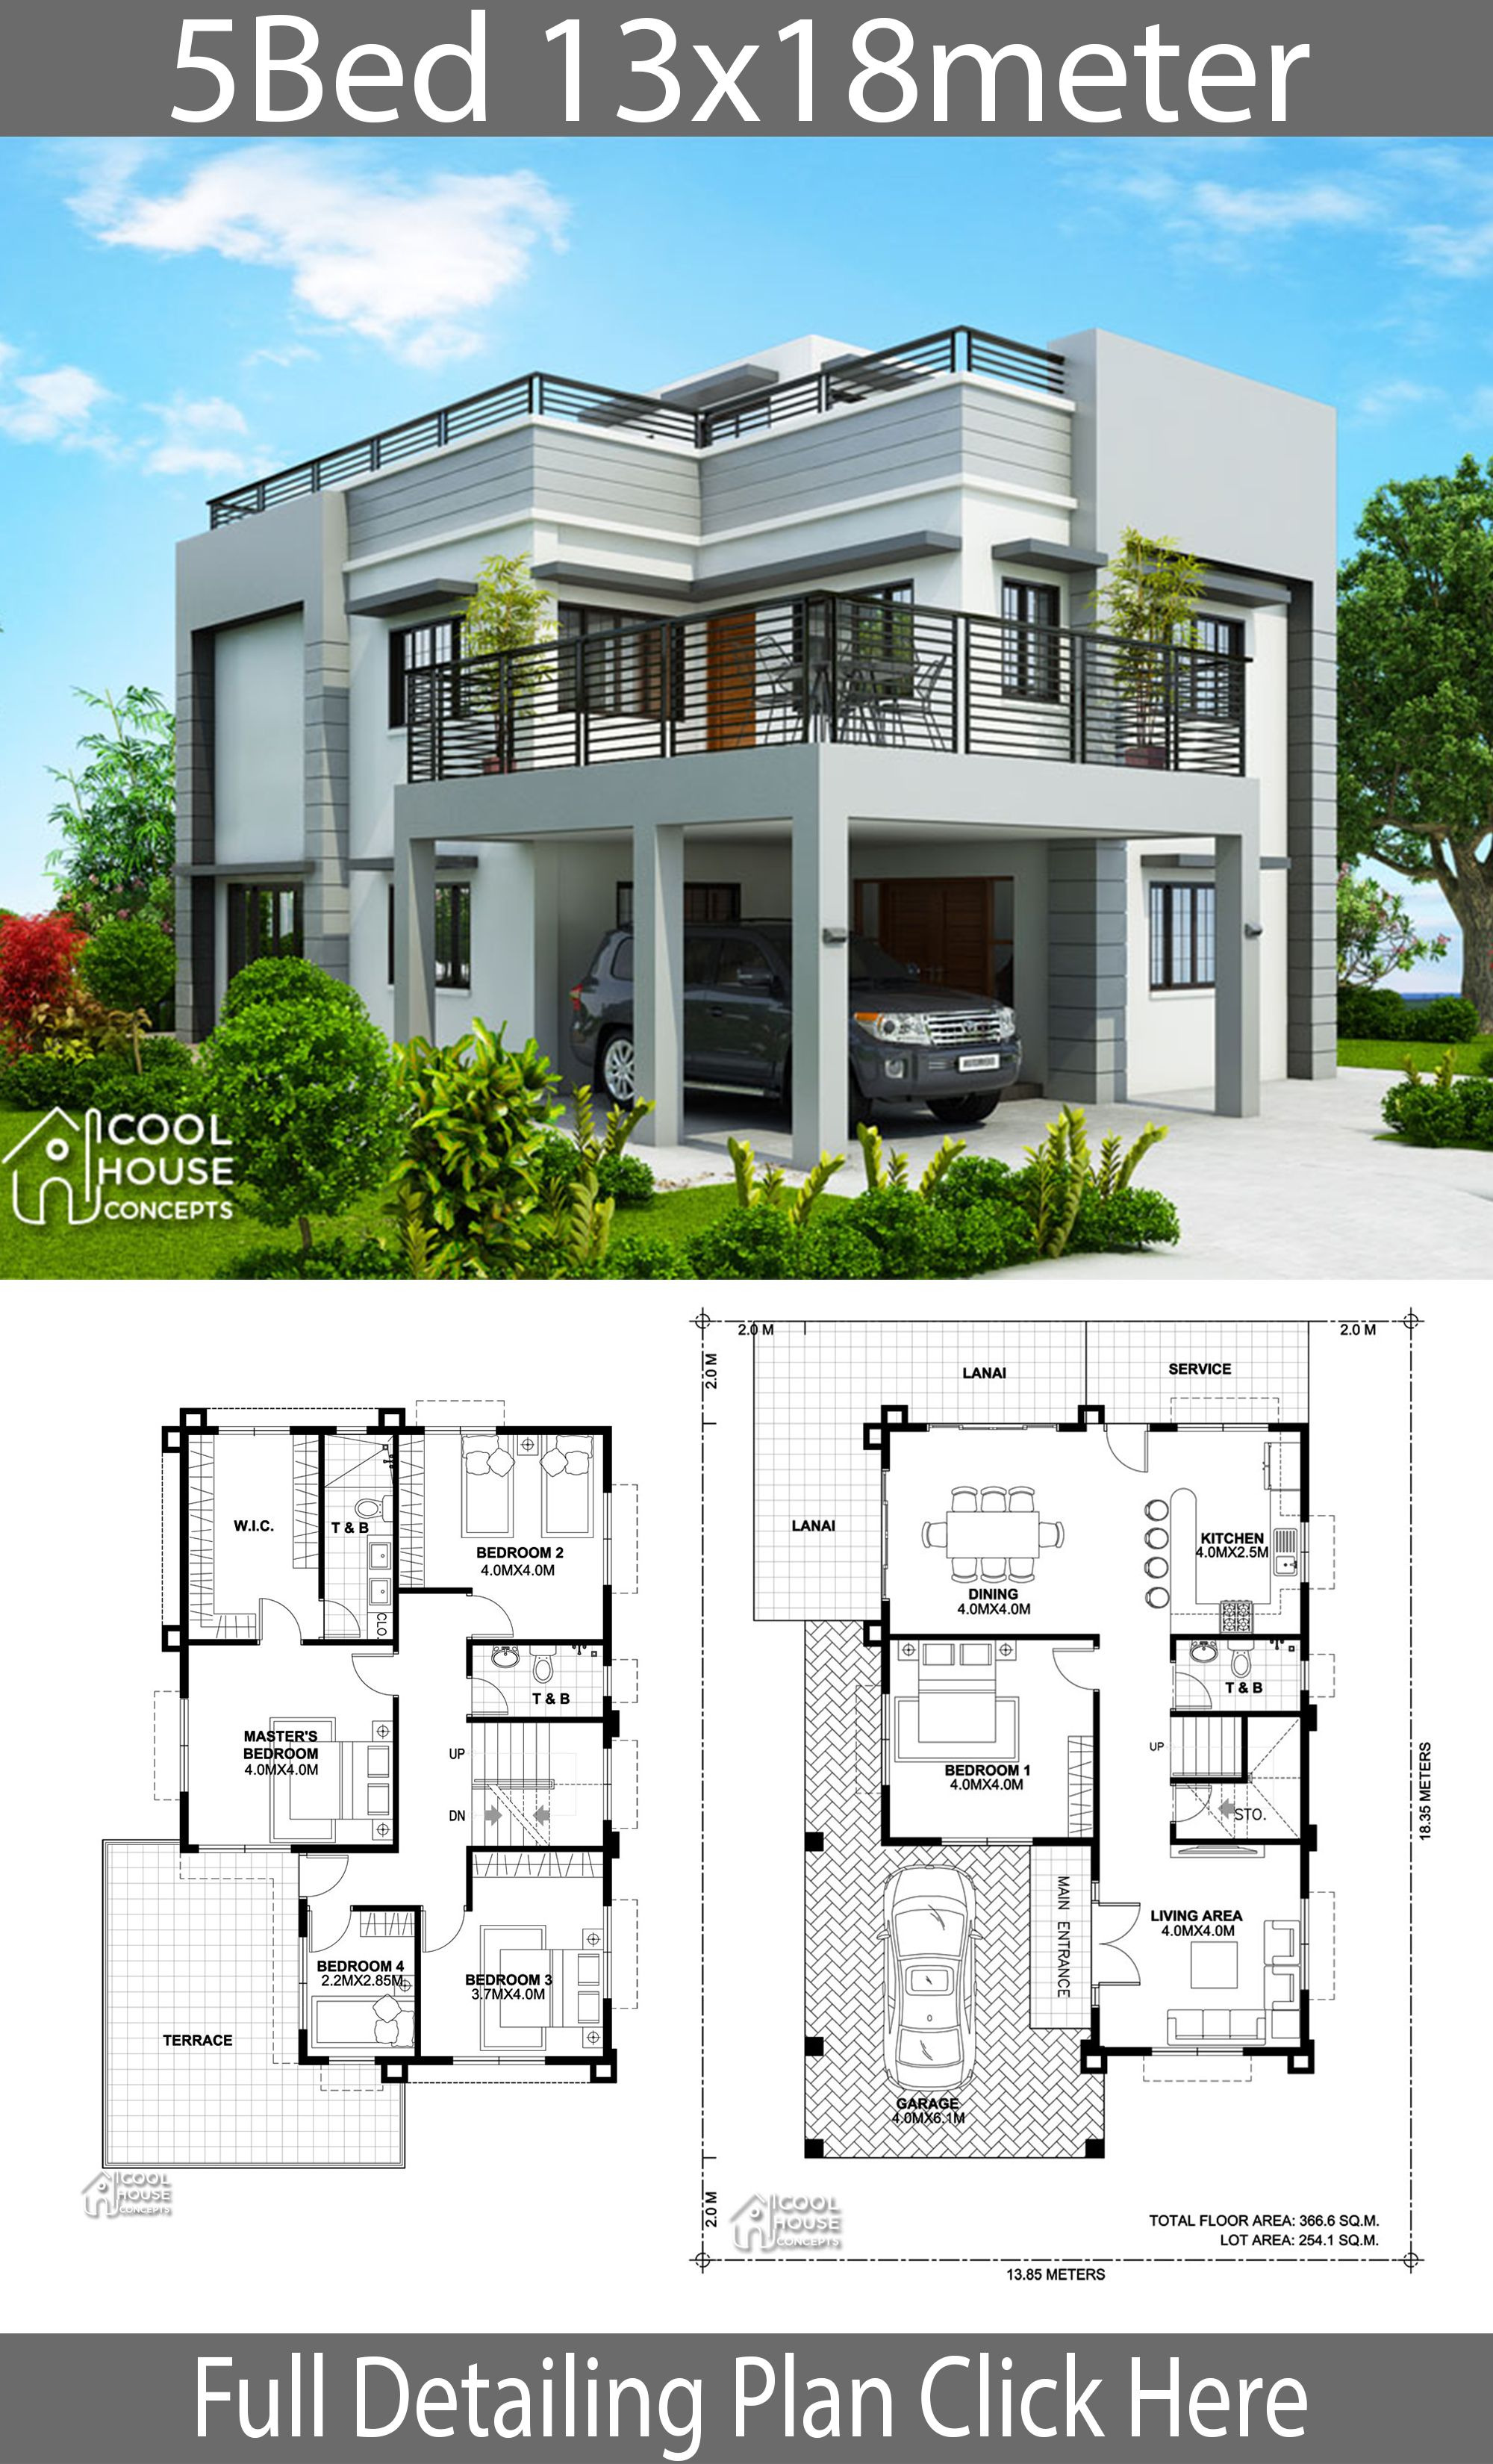 Designing A House Floor Plan New Pin by Veronica Jane Briones On Home Plans